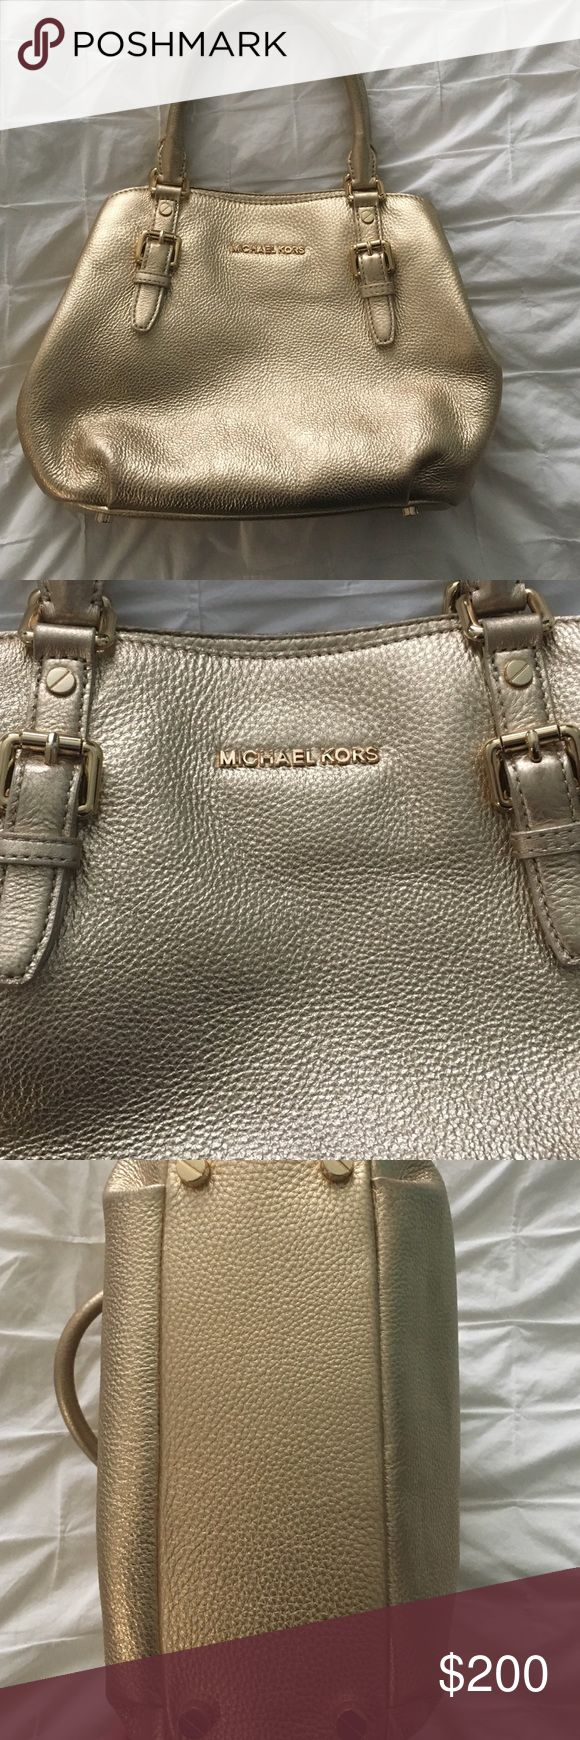 Gold Micheal Kors handbag Beautiful, gold, leather bag in Great condition. Bought at Nordstrom. Used minimally. One stain on interior, shown in pictures. Michael Kors Bags